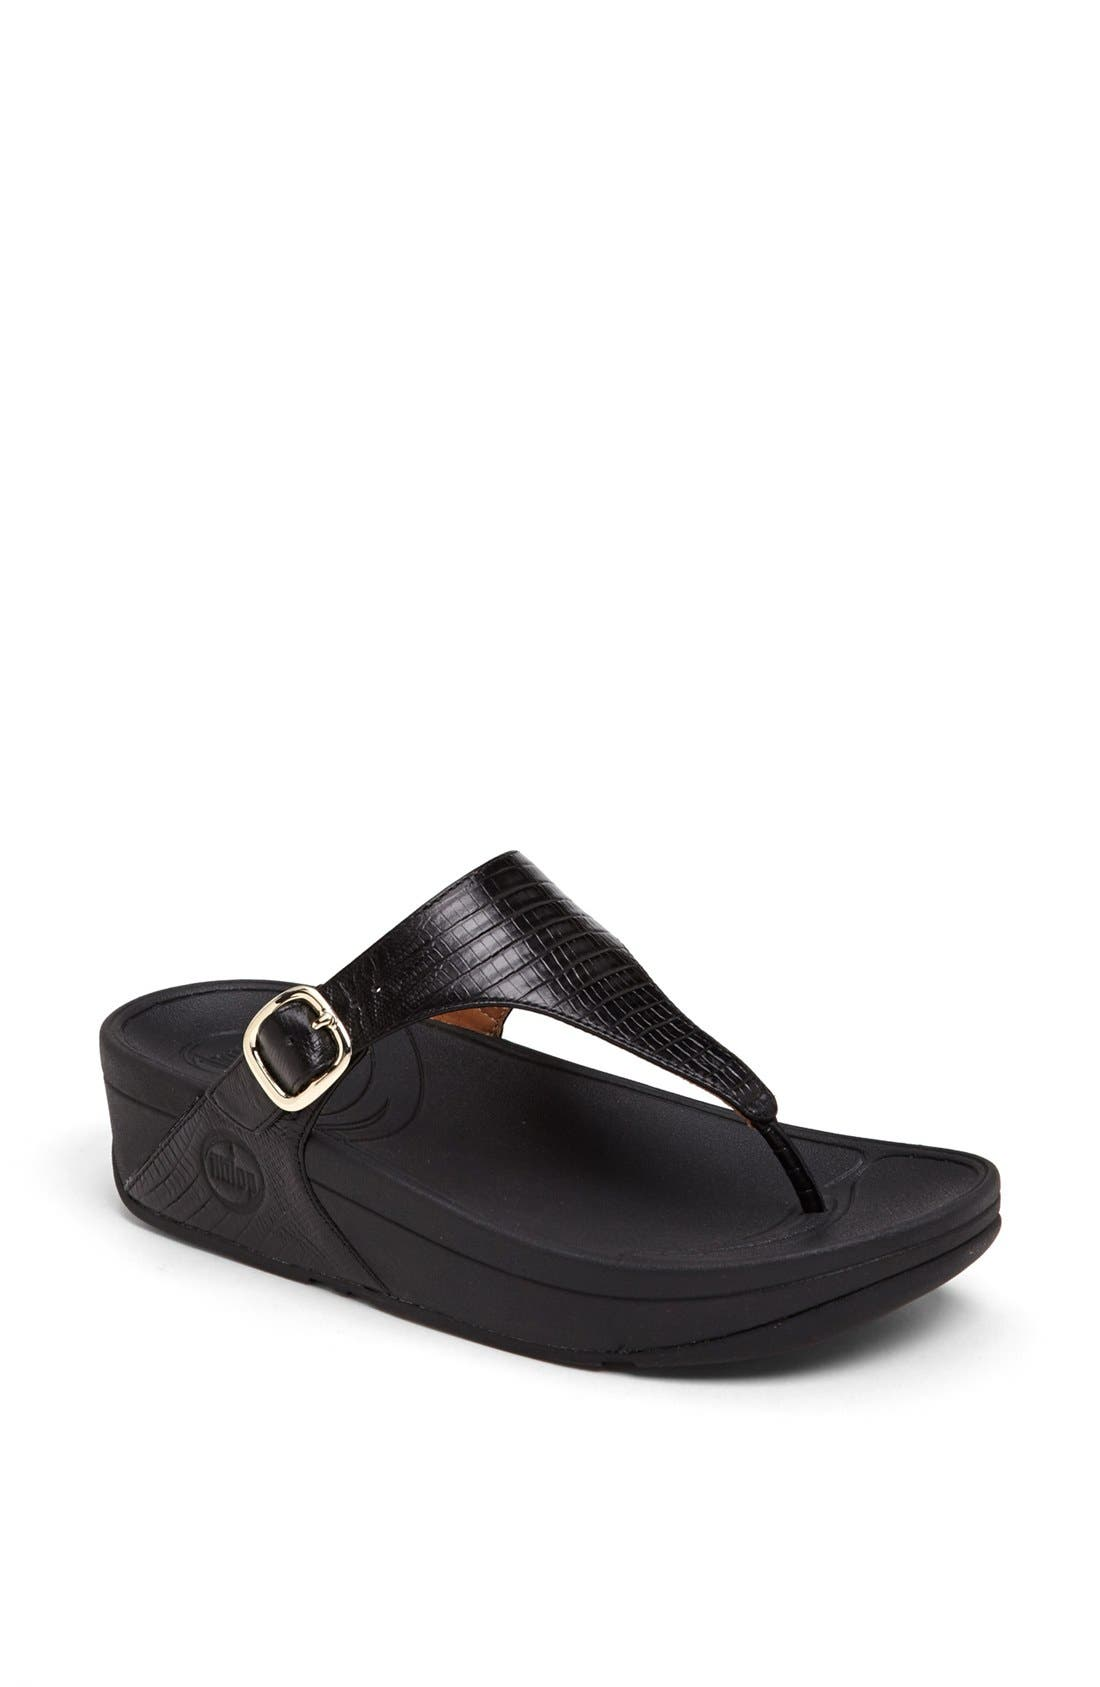 Main Image - FitFlop 'The Skinny™' Flip Flop (Women)